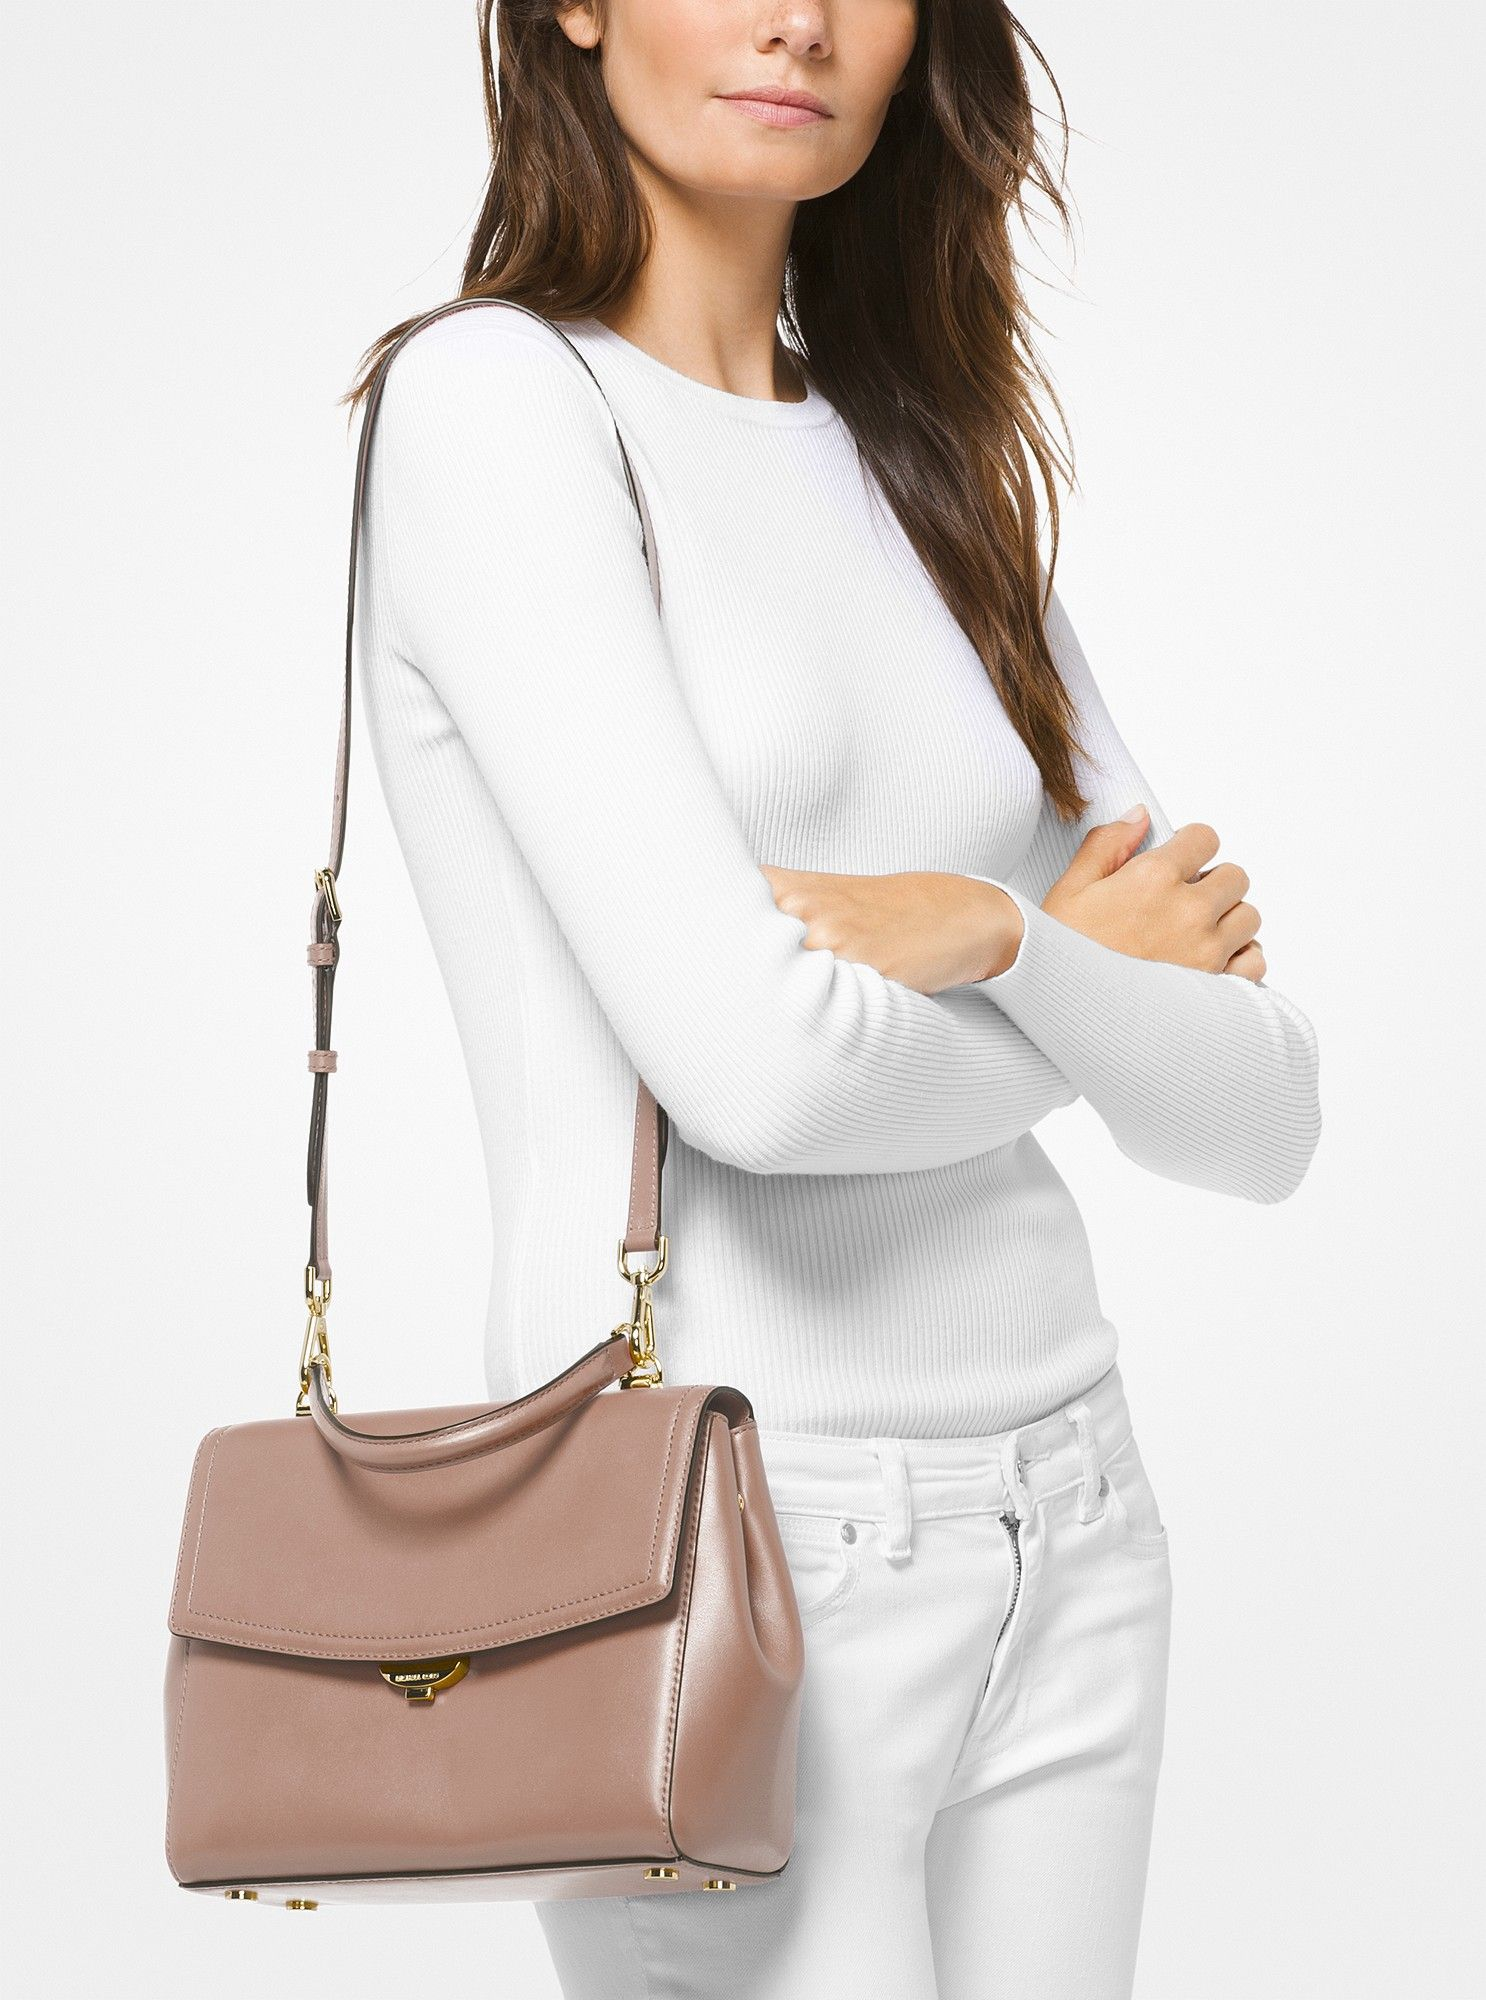 39c0dc23e6a4 Ava Medium Leather Satchel by Michael Kors | Products | Leather ...